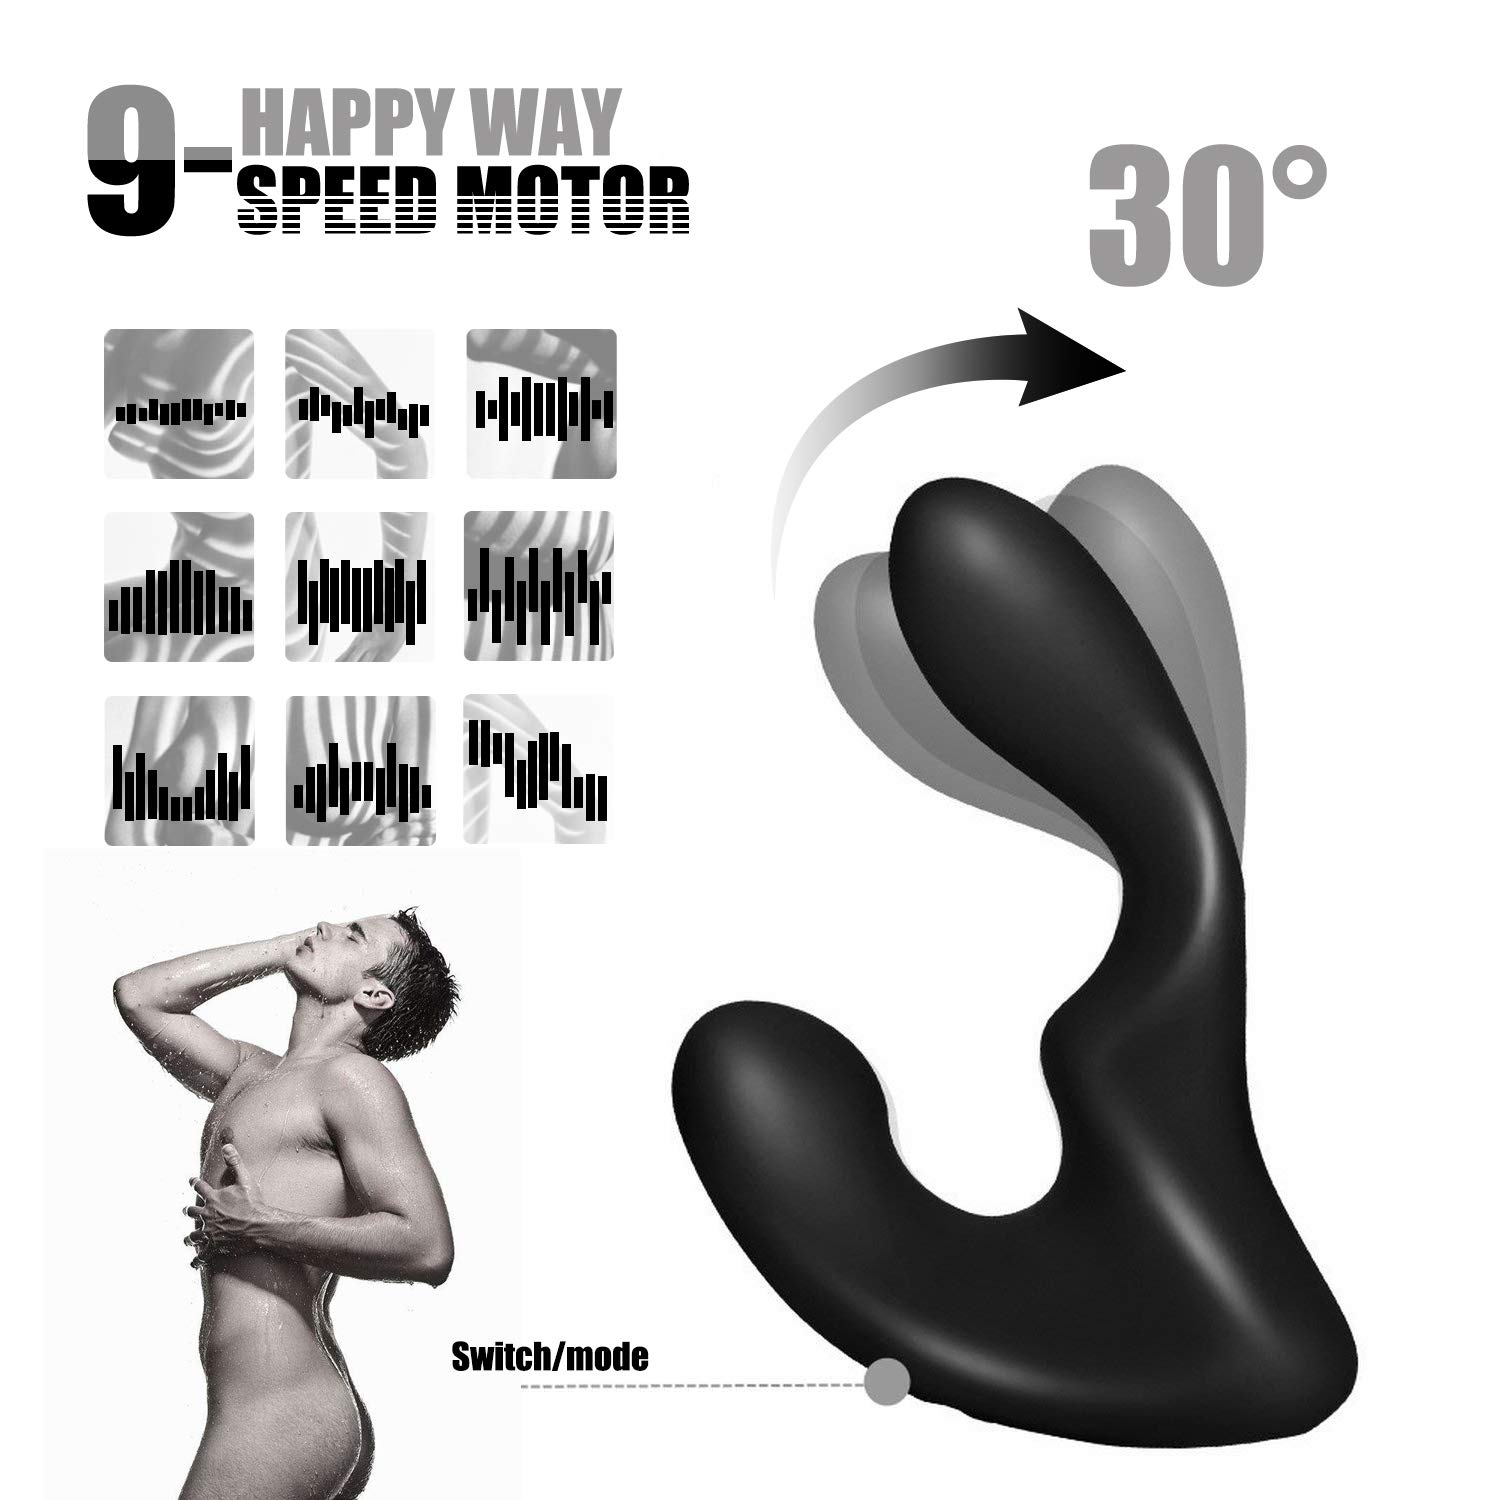 Personal Vibrator Men Invisible Prostate Adult Toy Wireless Remote Control Super Vibrator Panty Speed Tshirt